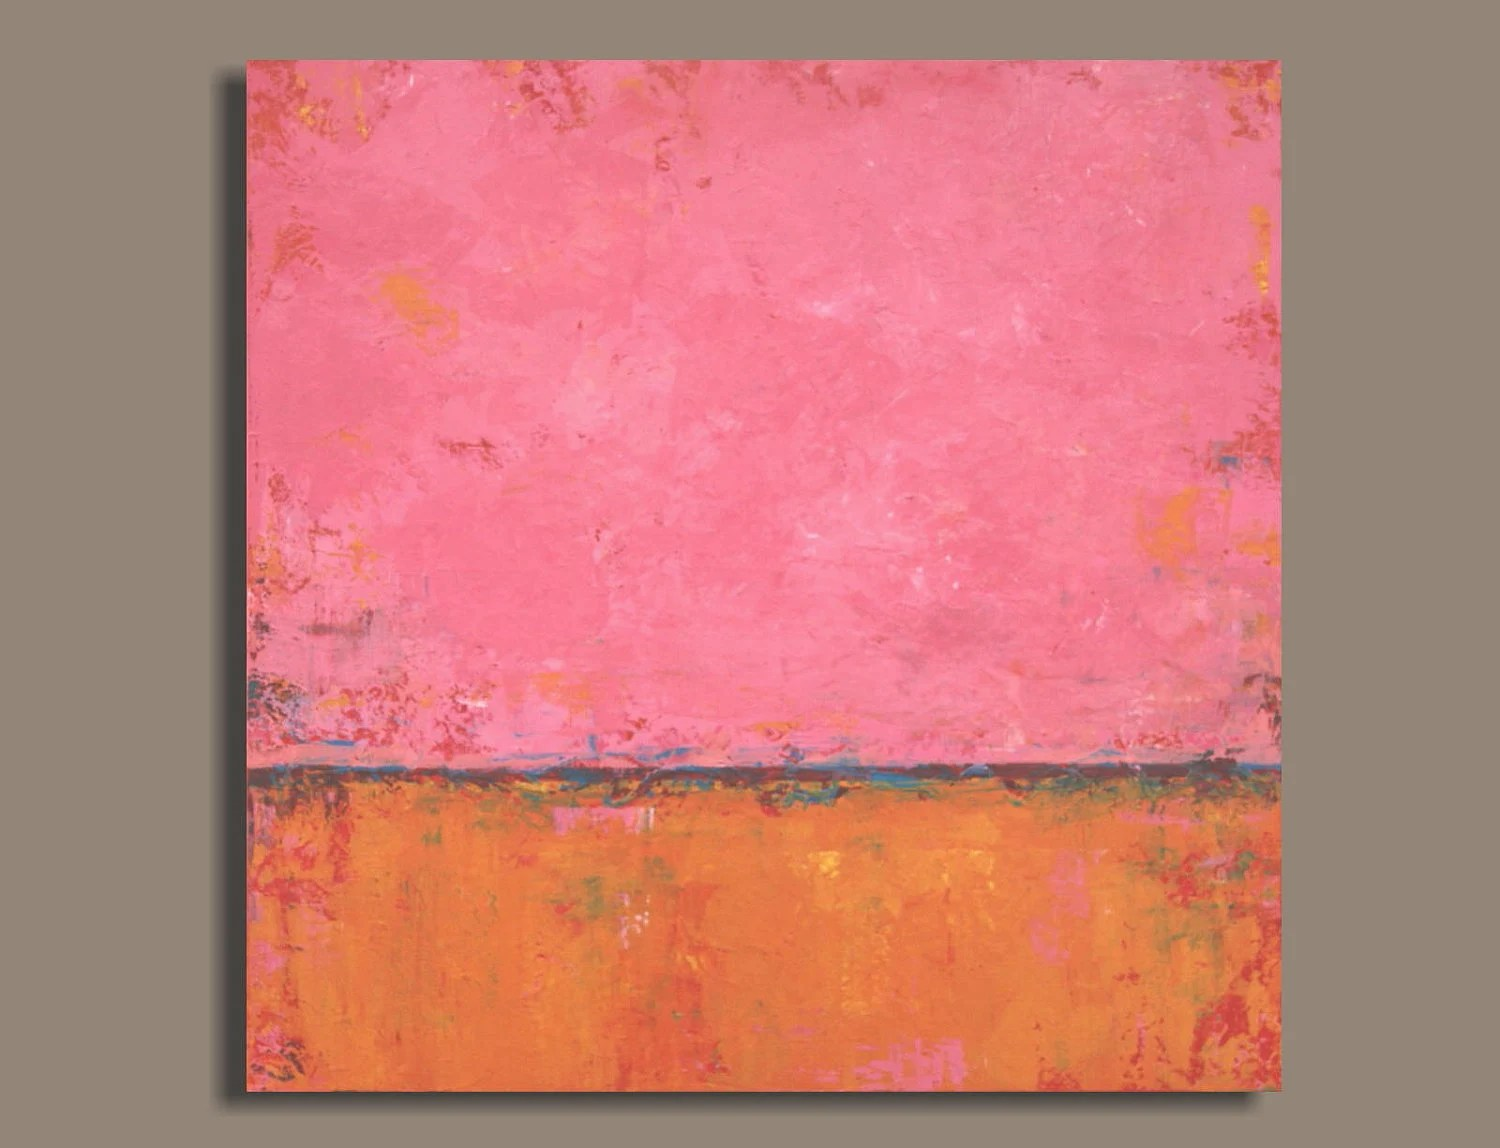 Huge Hot Pink And Orange Abstract Painting 30x30 Original